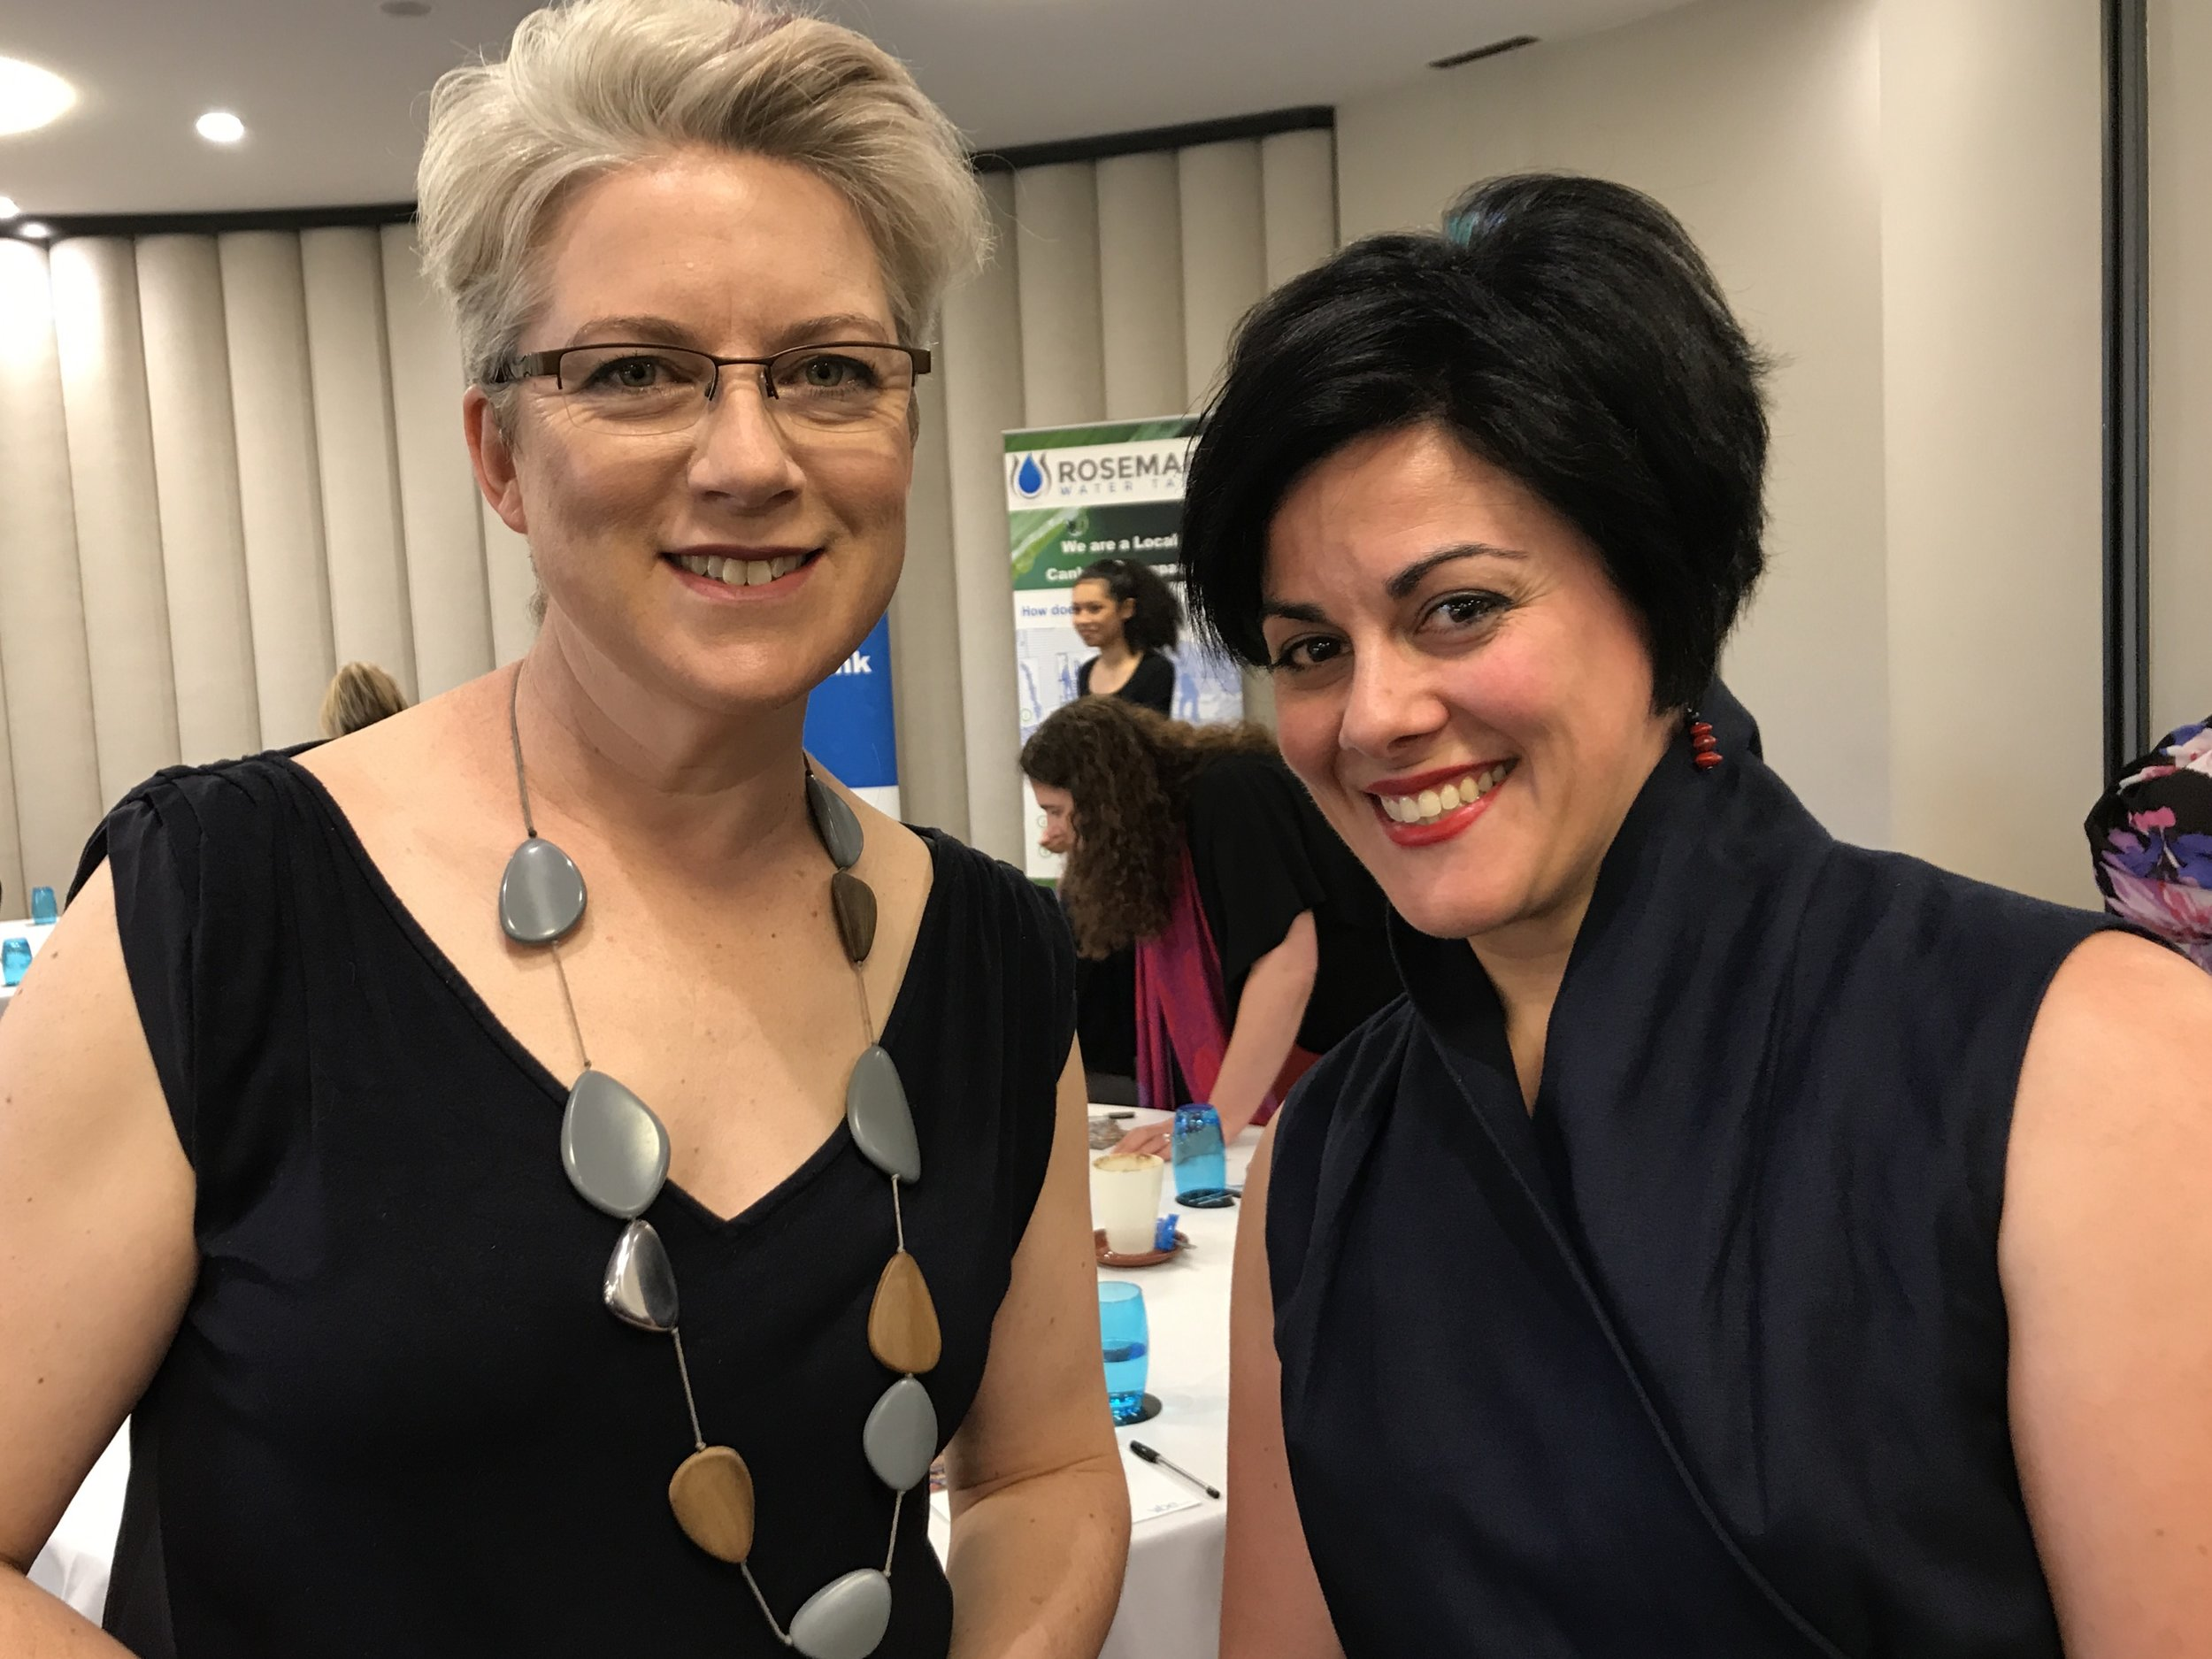 Planepack spotted @Airpocket's Trish Smith and Maria Filardo at a recent @canberrawisewomen event